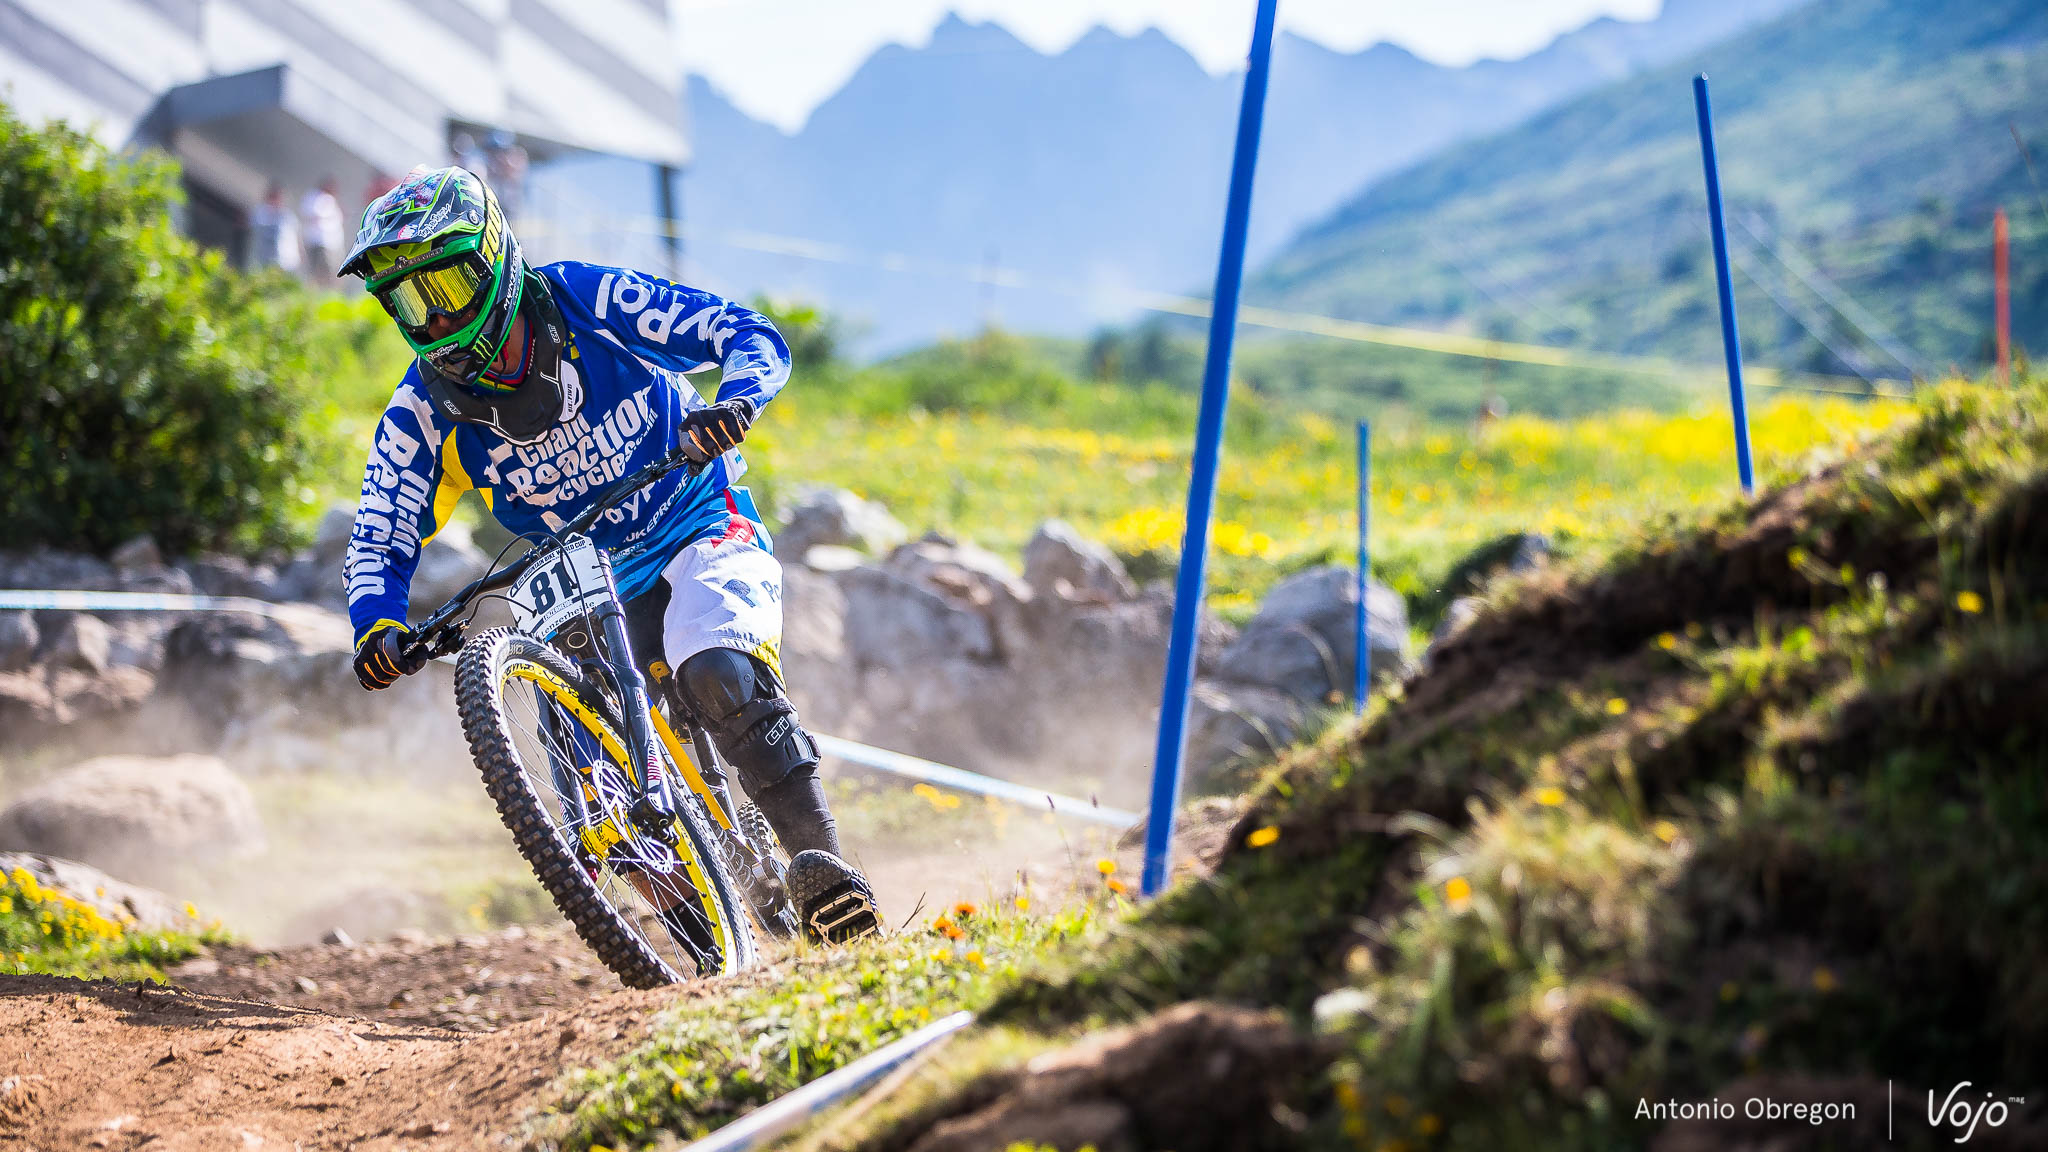 Lenzerheide_UCI_World_Cup_DH_2015_final_Porfoli_Elite_Copyright_Antonio_Obregon_VojoMag-22